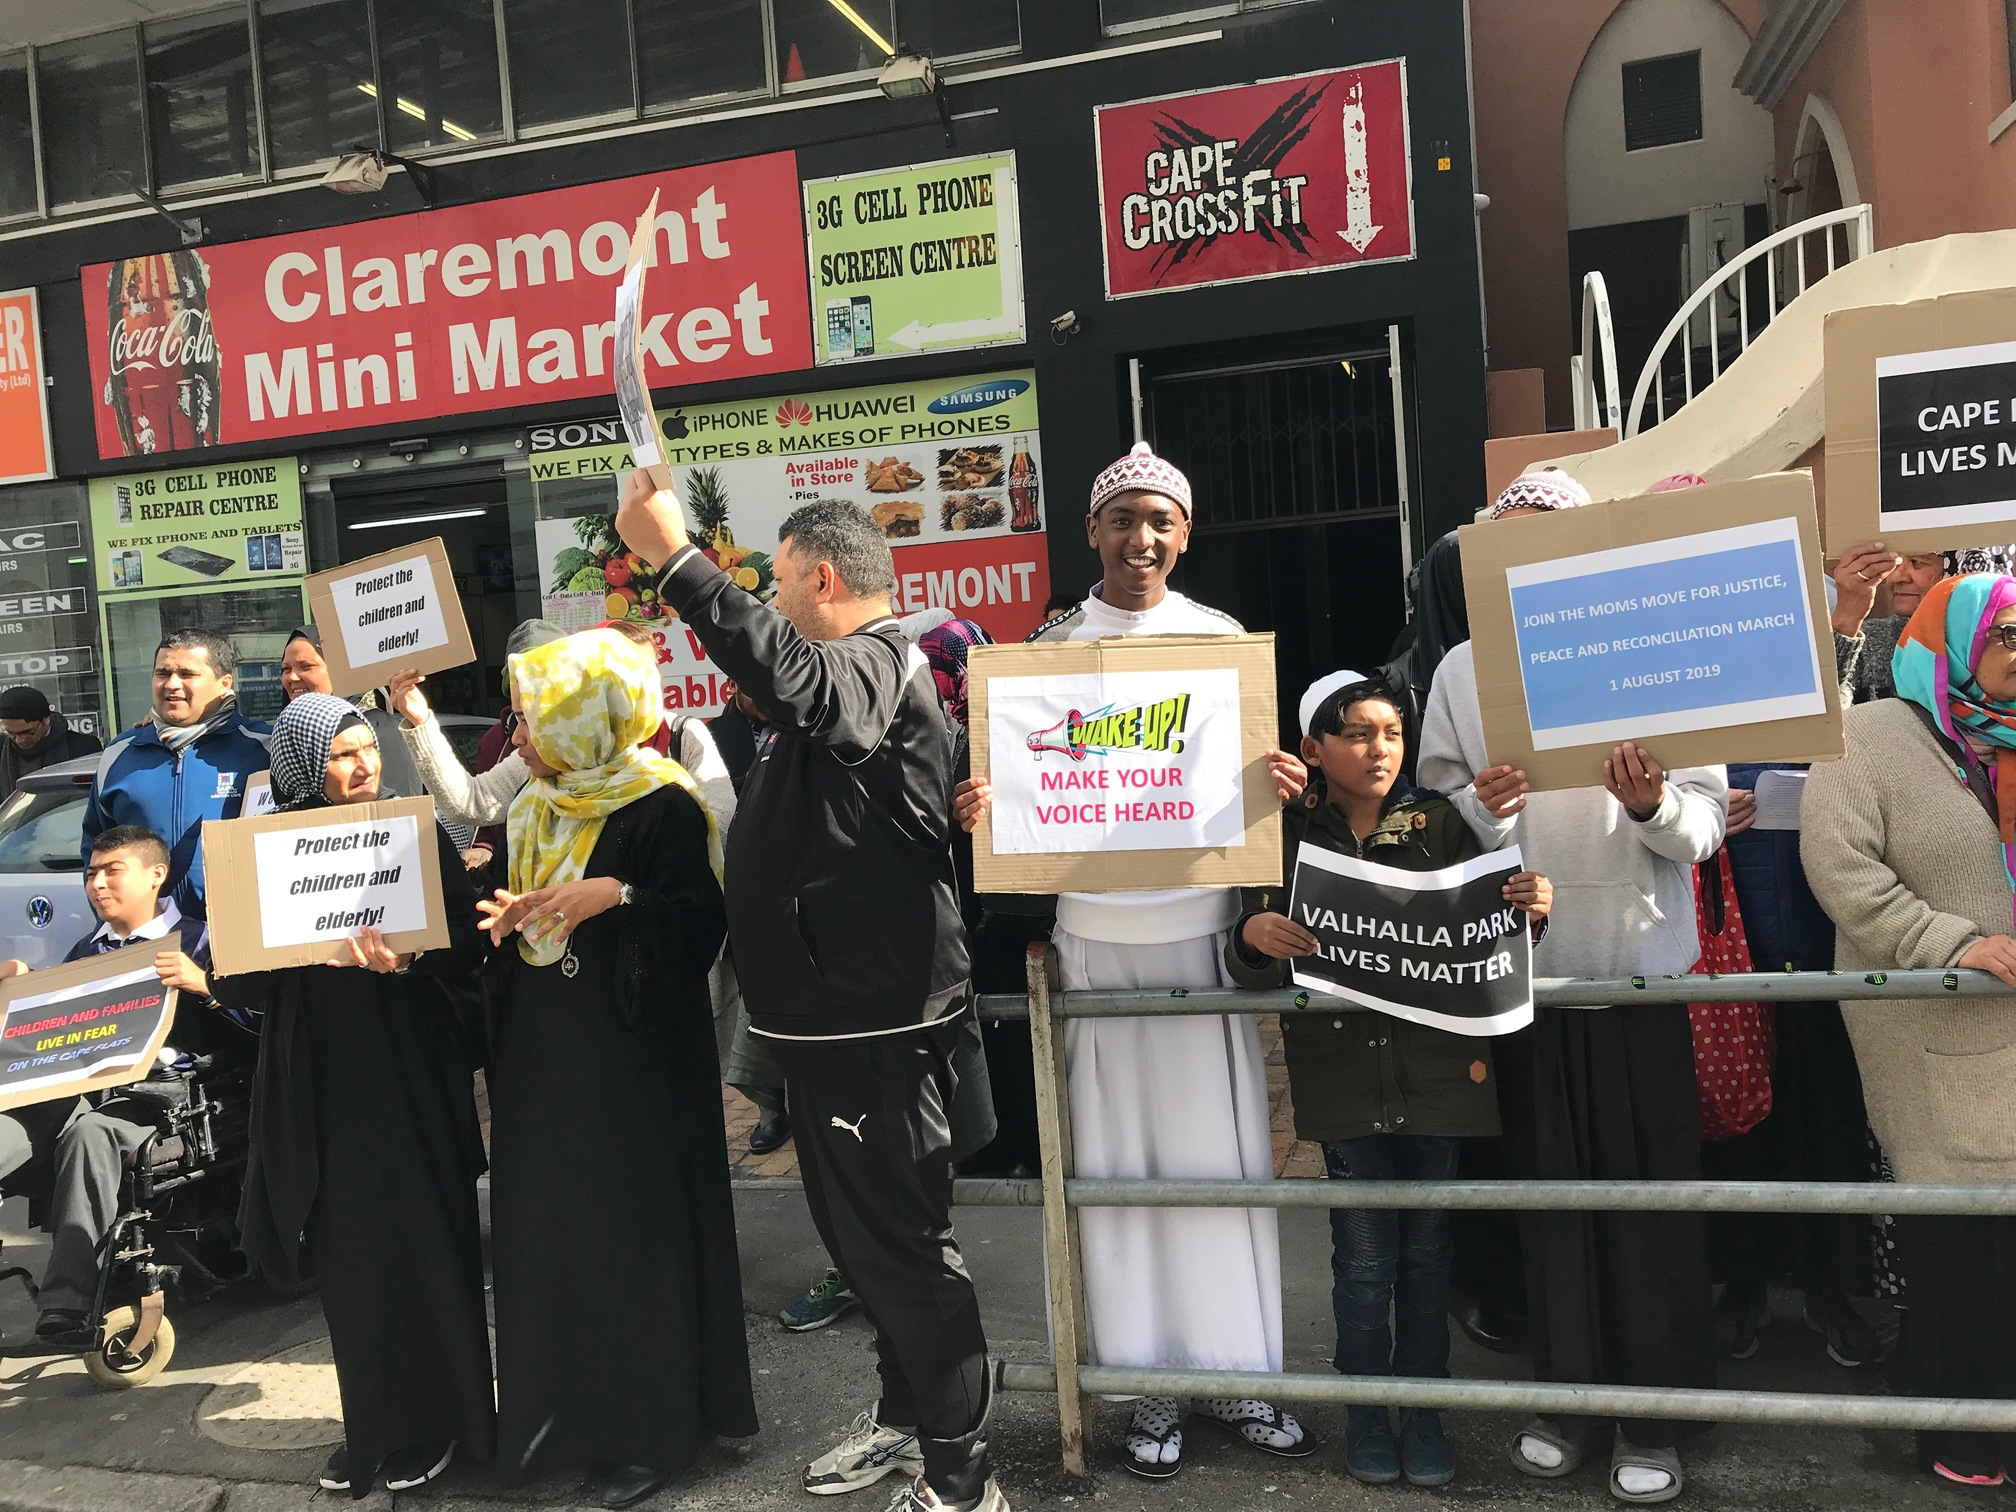 Claremont Mosque calls for religious leaders to respond to Cape Flats violence